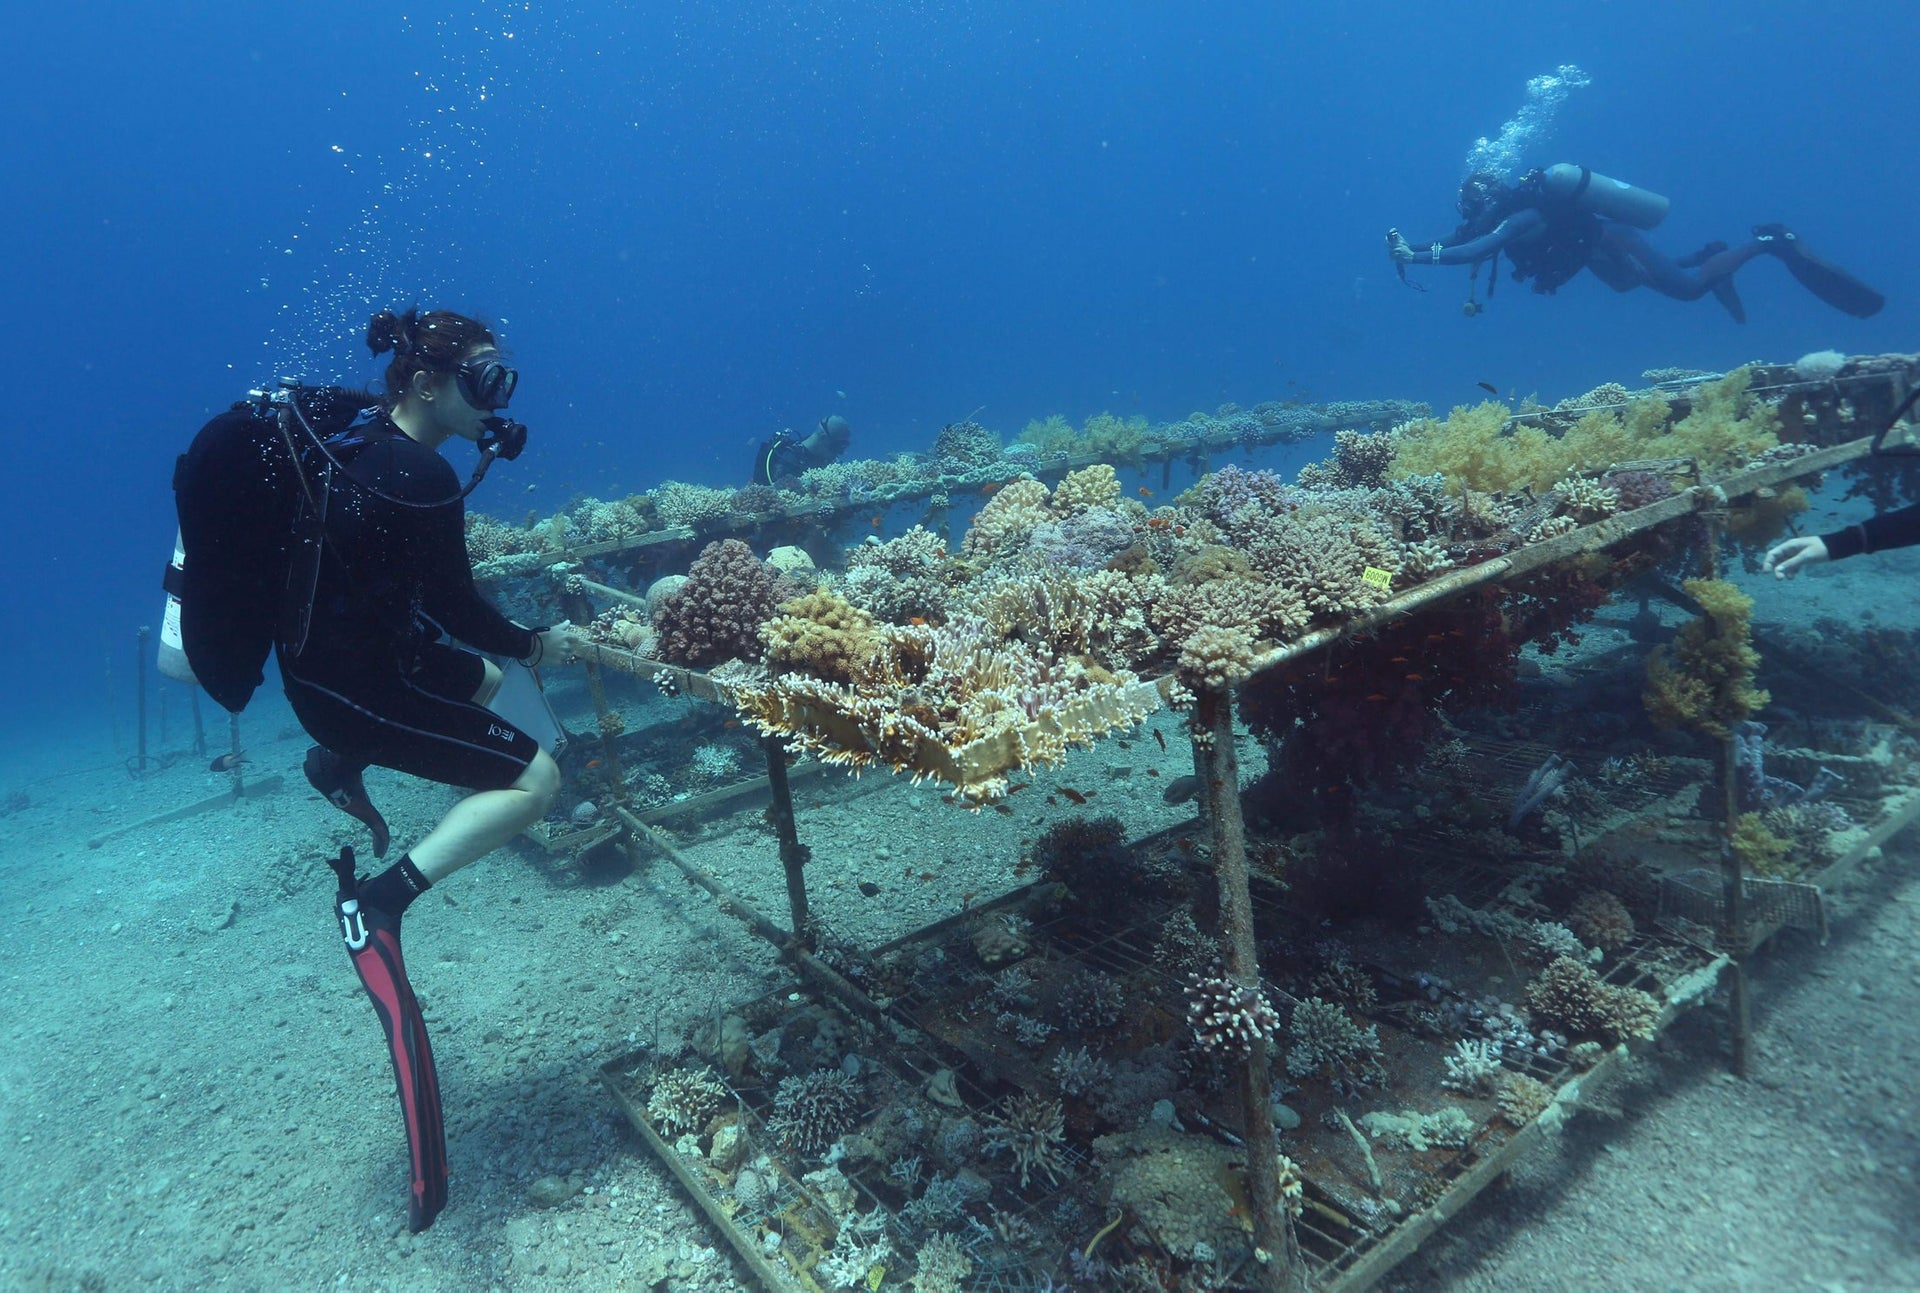 Researchers from the Interuniversity Institute for Marine Sciences in the southern Israeli resort city Eilat monitor coral growth while scuba diving on June 12, 2017 in the Red Sea off Eilat.